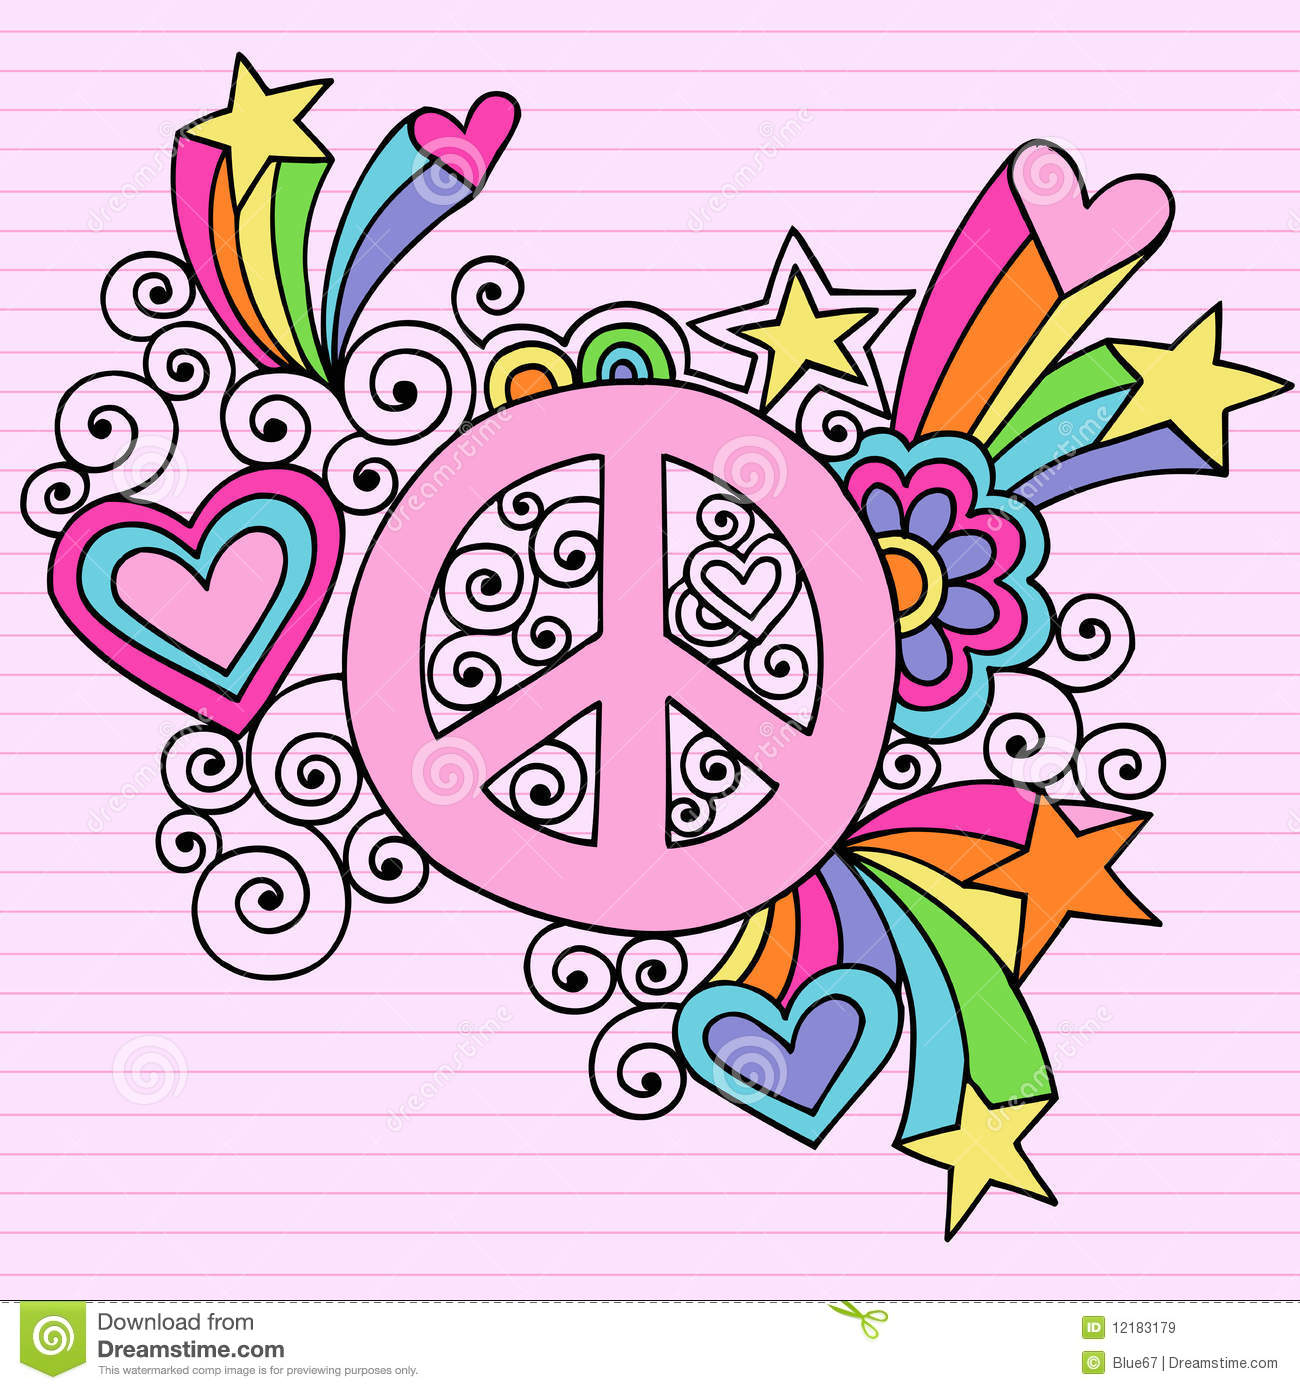 Cool Frame Designs Psychedelic Peace Sign Notebook Doodle Vector Stock Vector